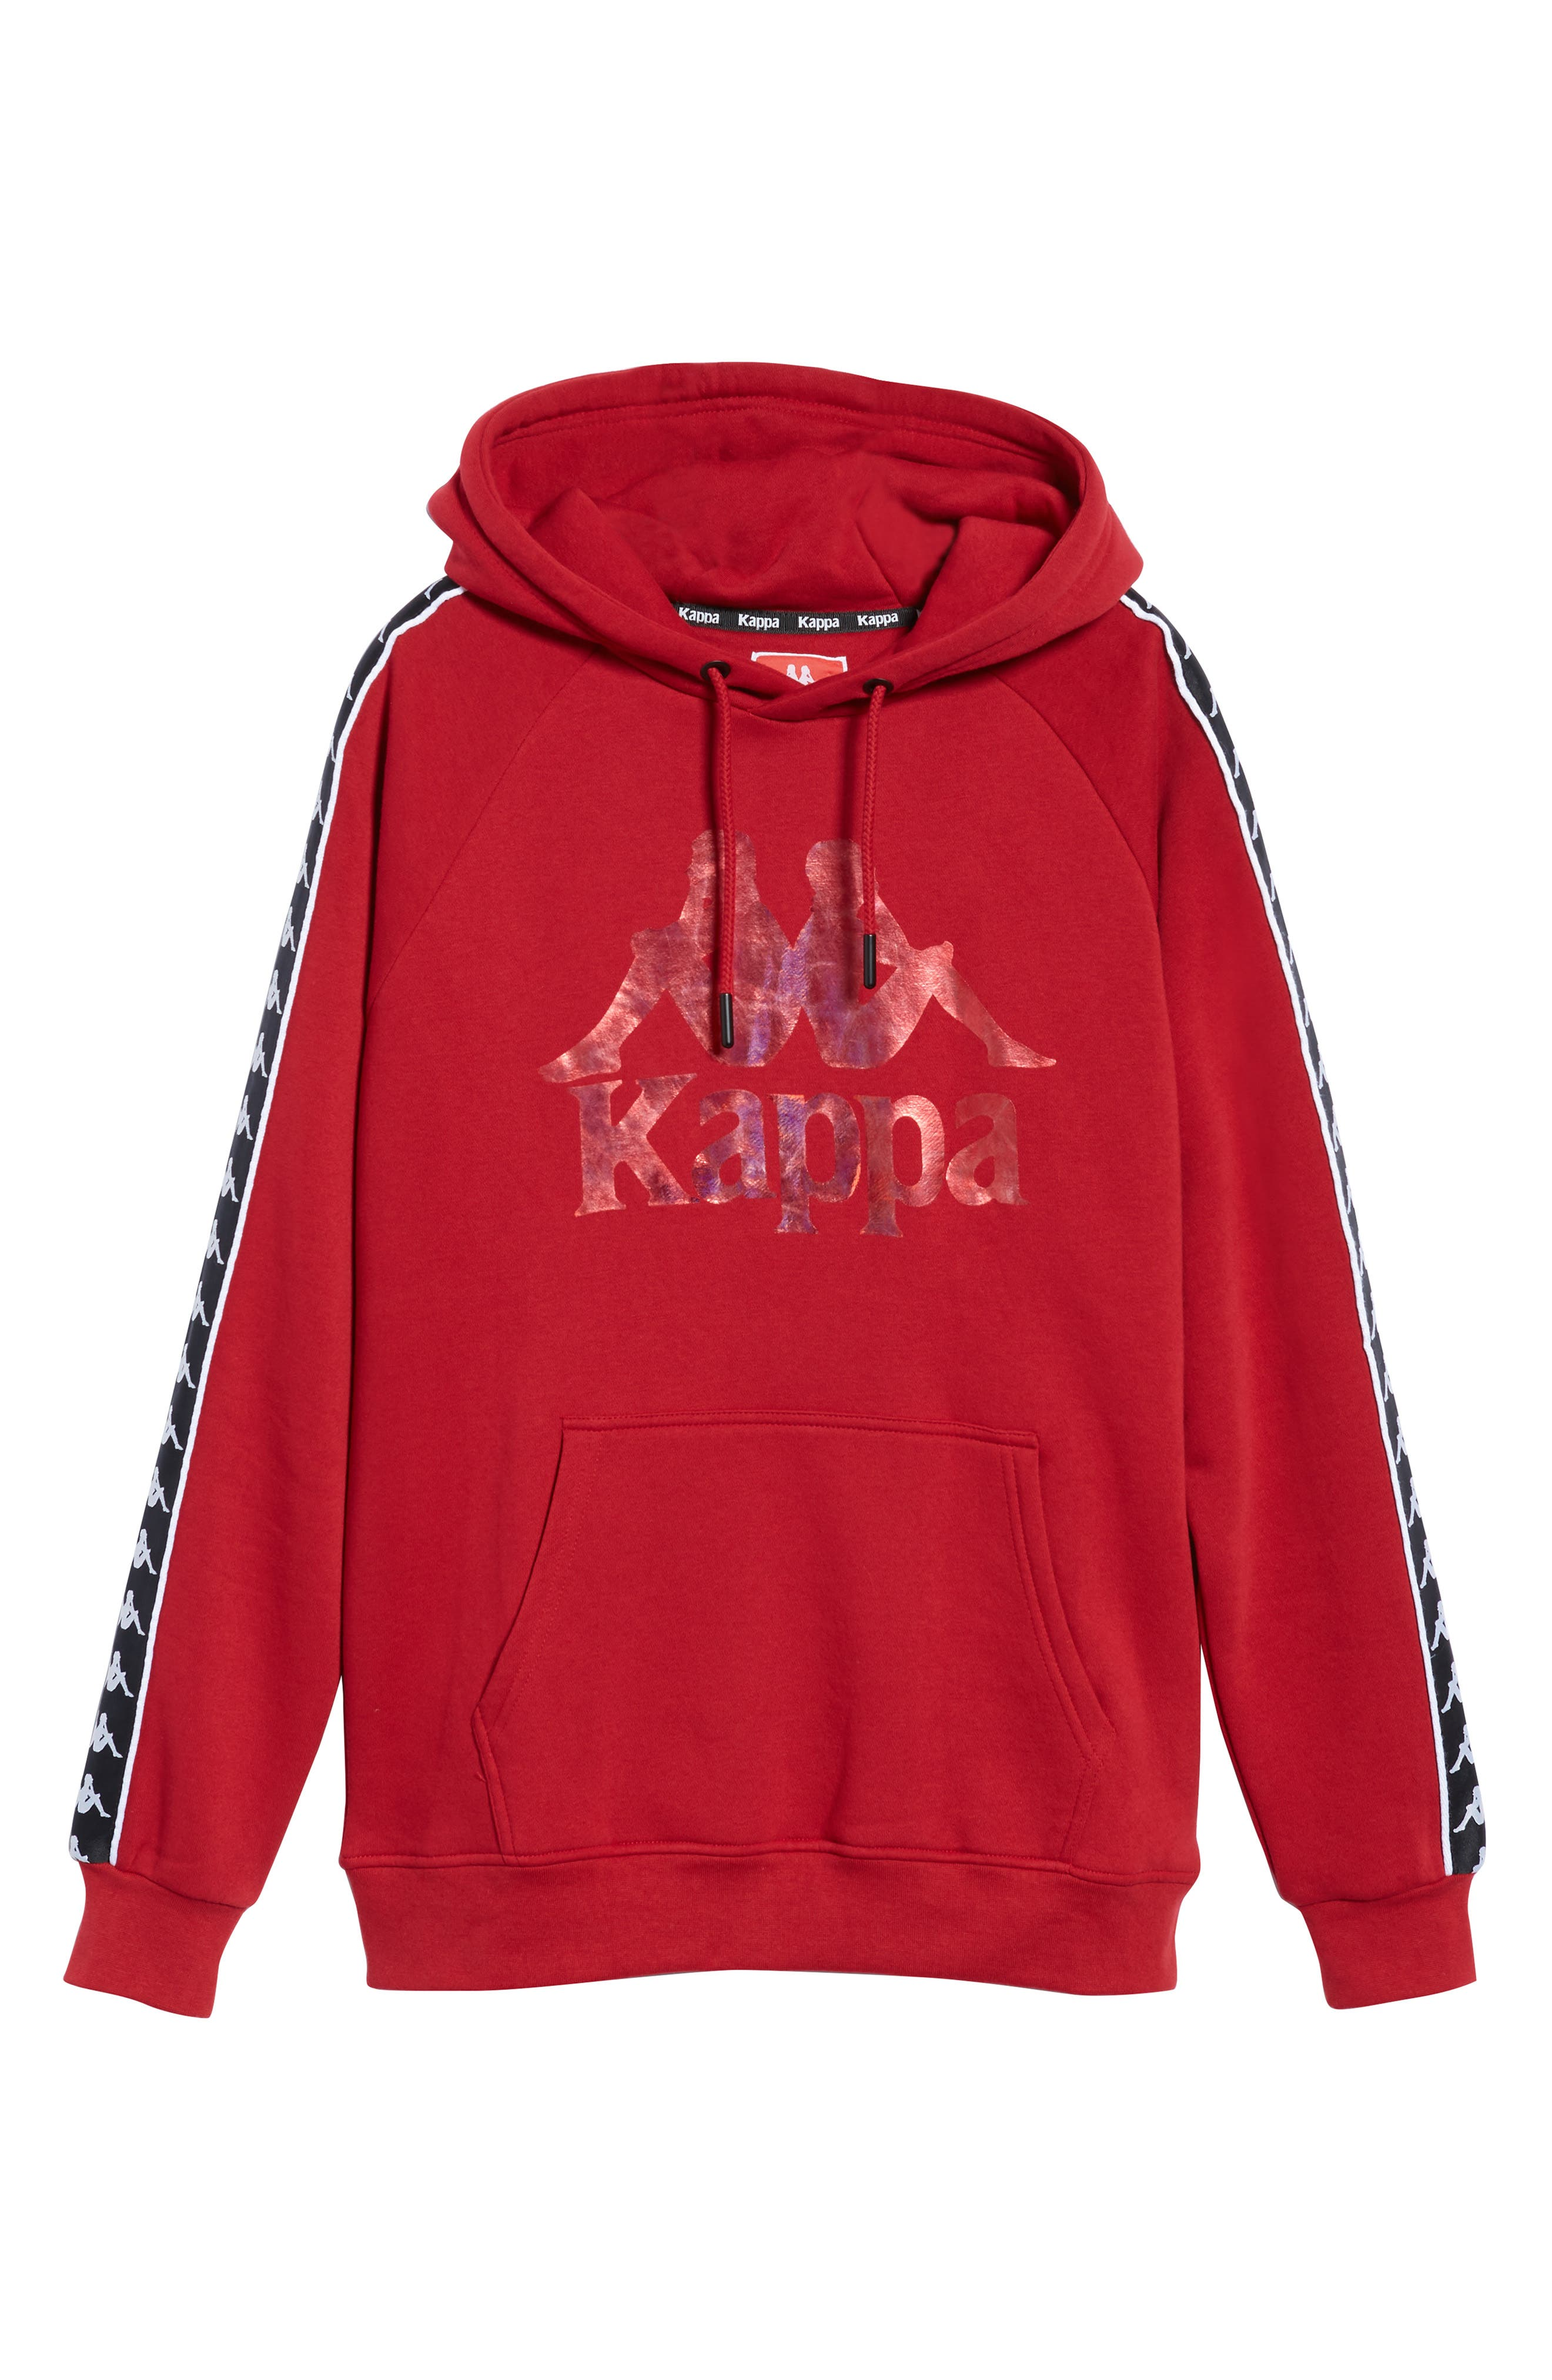 Banda Graphic Hoodie,                             Alternate thumbnail 6, color,                             RED/ BLACK/ WHITE